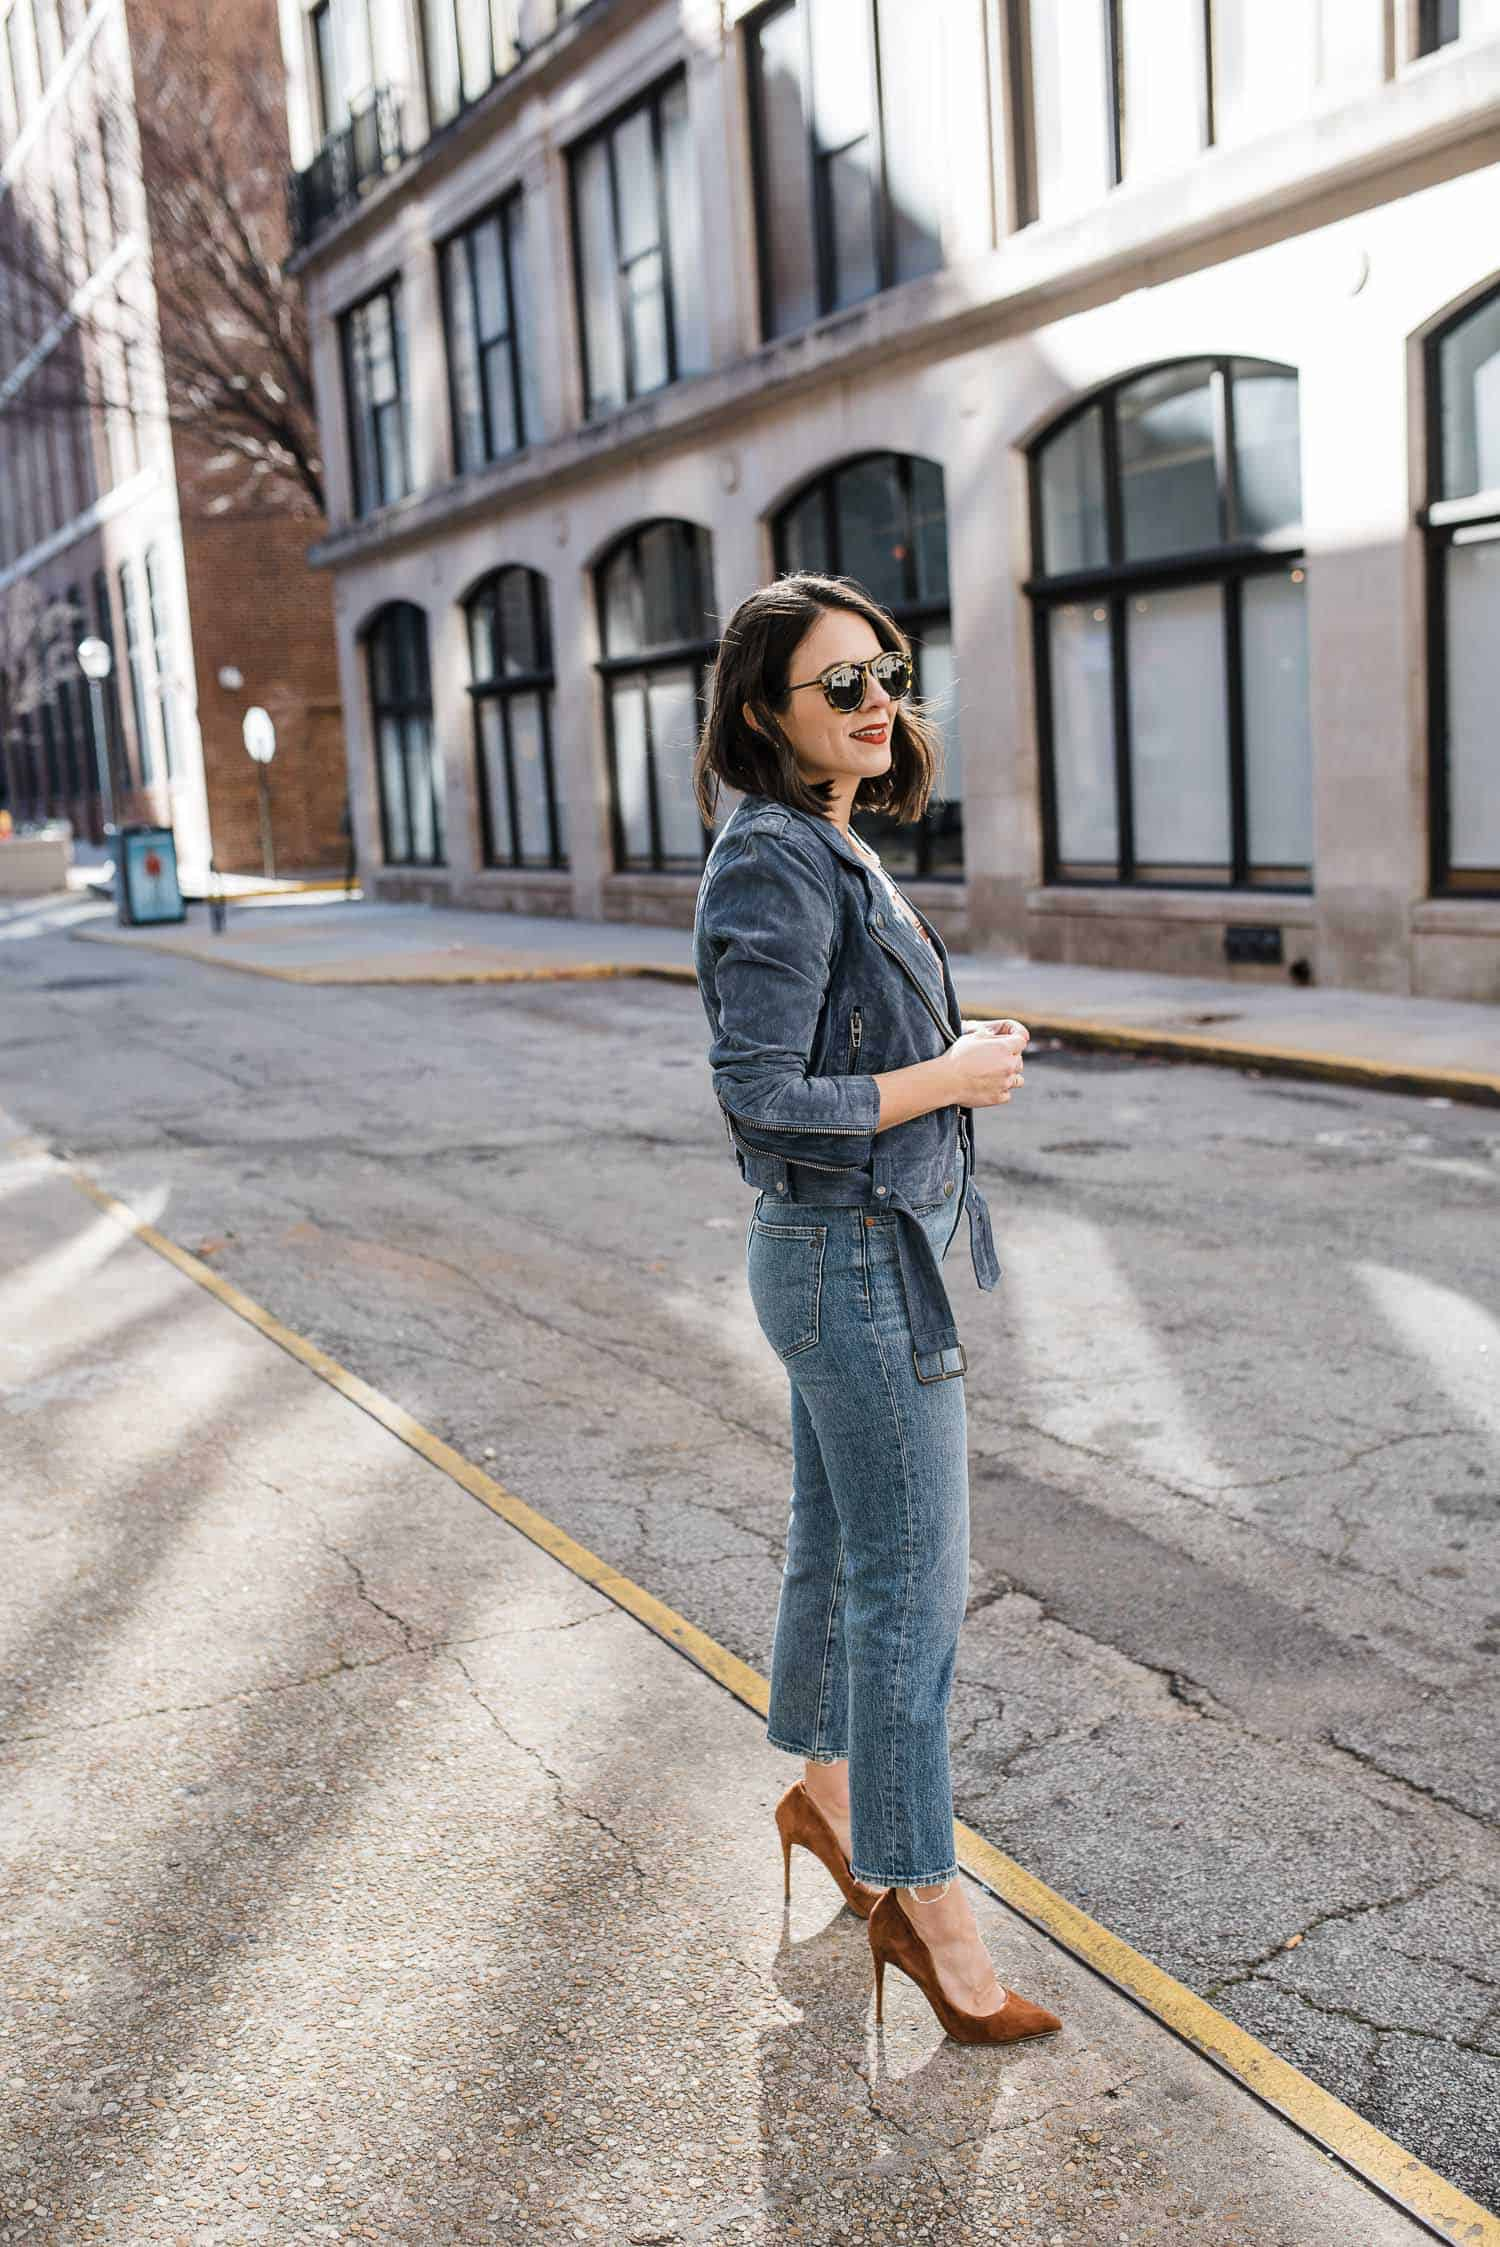 How to style a blue suede jacket for fall or spring